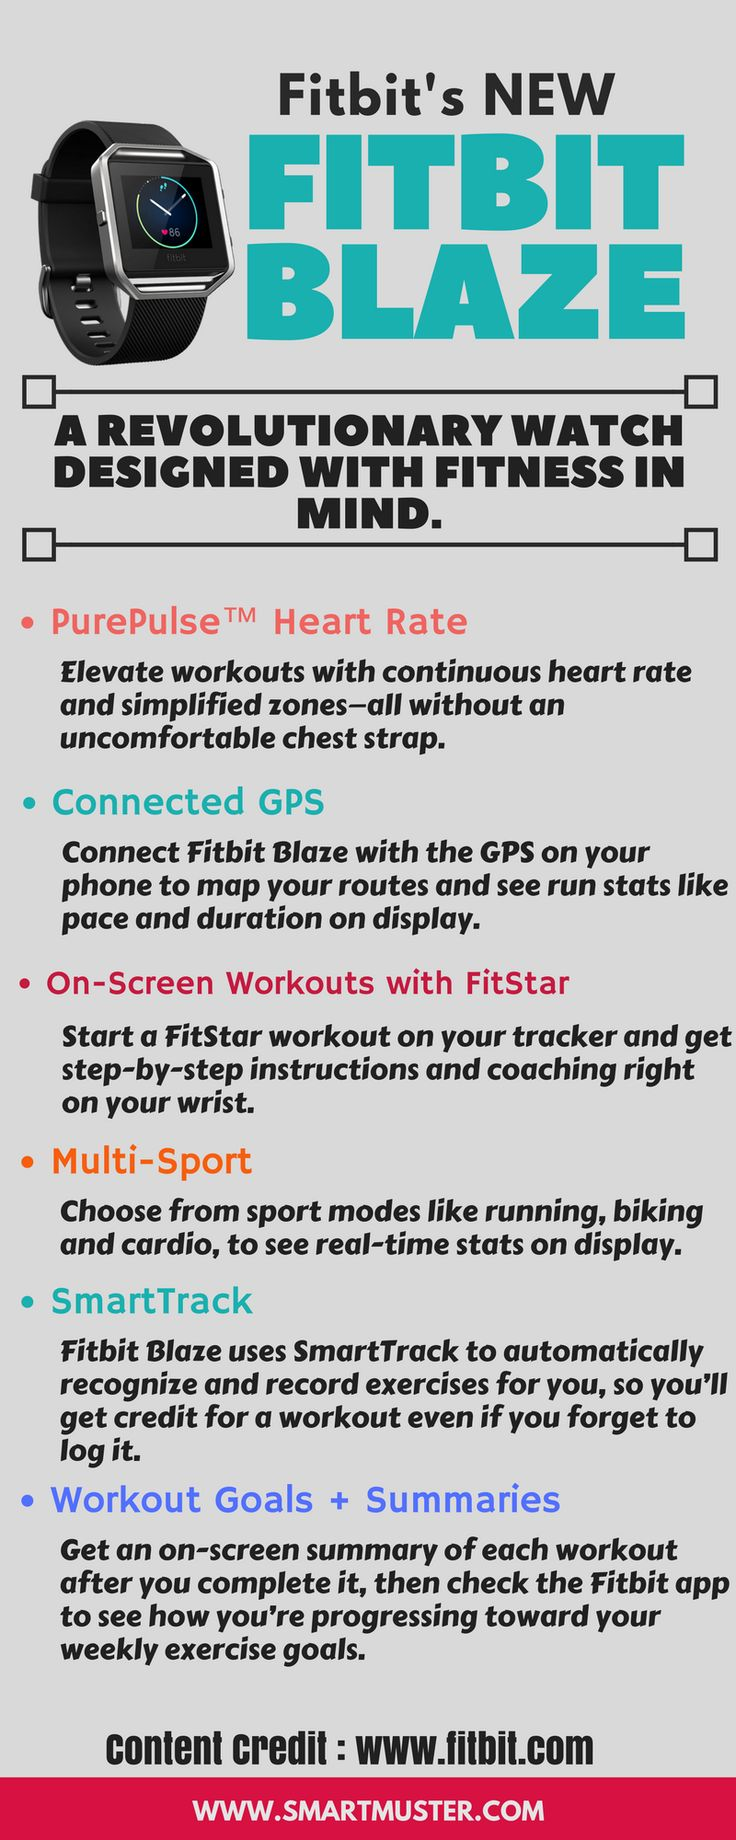 Get fit in style with Fitbit Blaze Smart Fitness Watch that helps you maximize every workout and every day. With advanced technology in a versatile design, this revolutionary device is built to track your workouts, monitor your performance stats, and gauge your progress. Pure pulse continuous heart rate and multi sport modes enhance every exercise, while next generation features like connected GPS and fit star workouts on your wrist help you take your fitness to the next level.